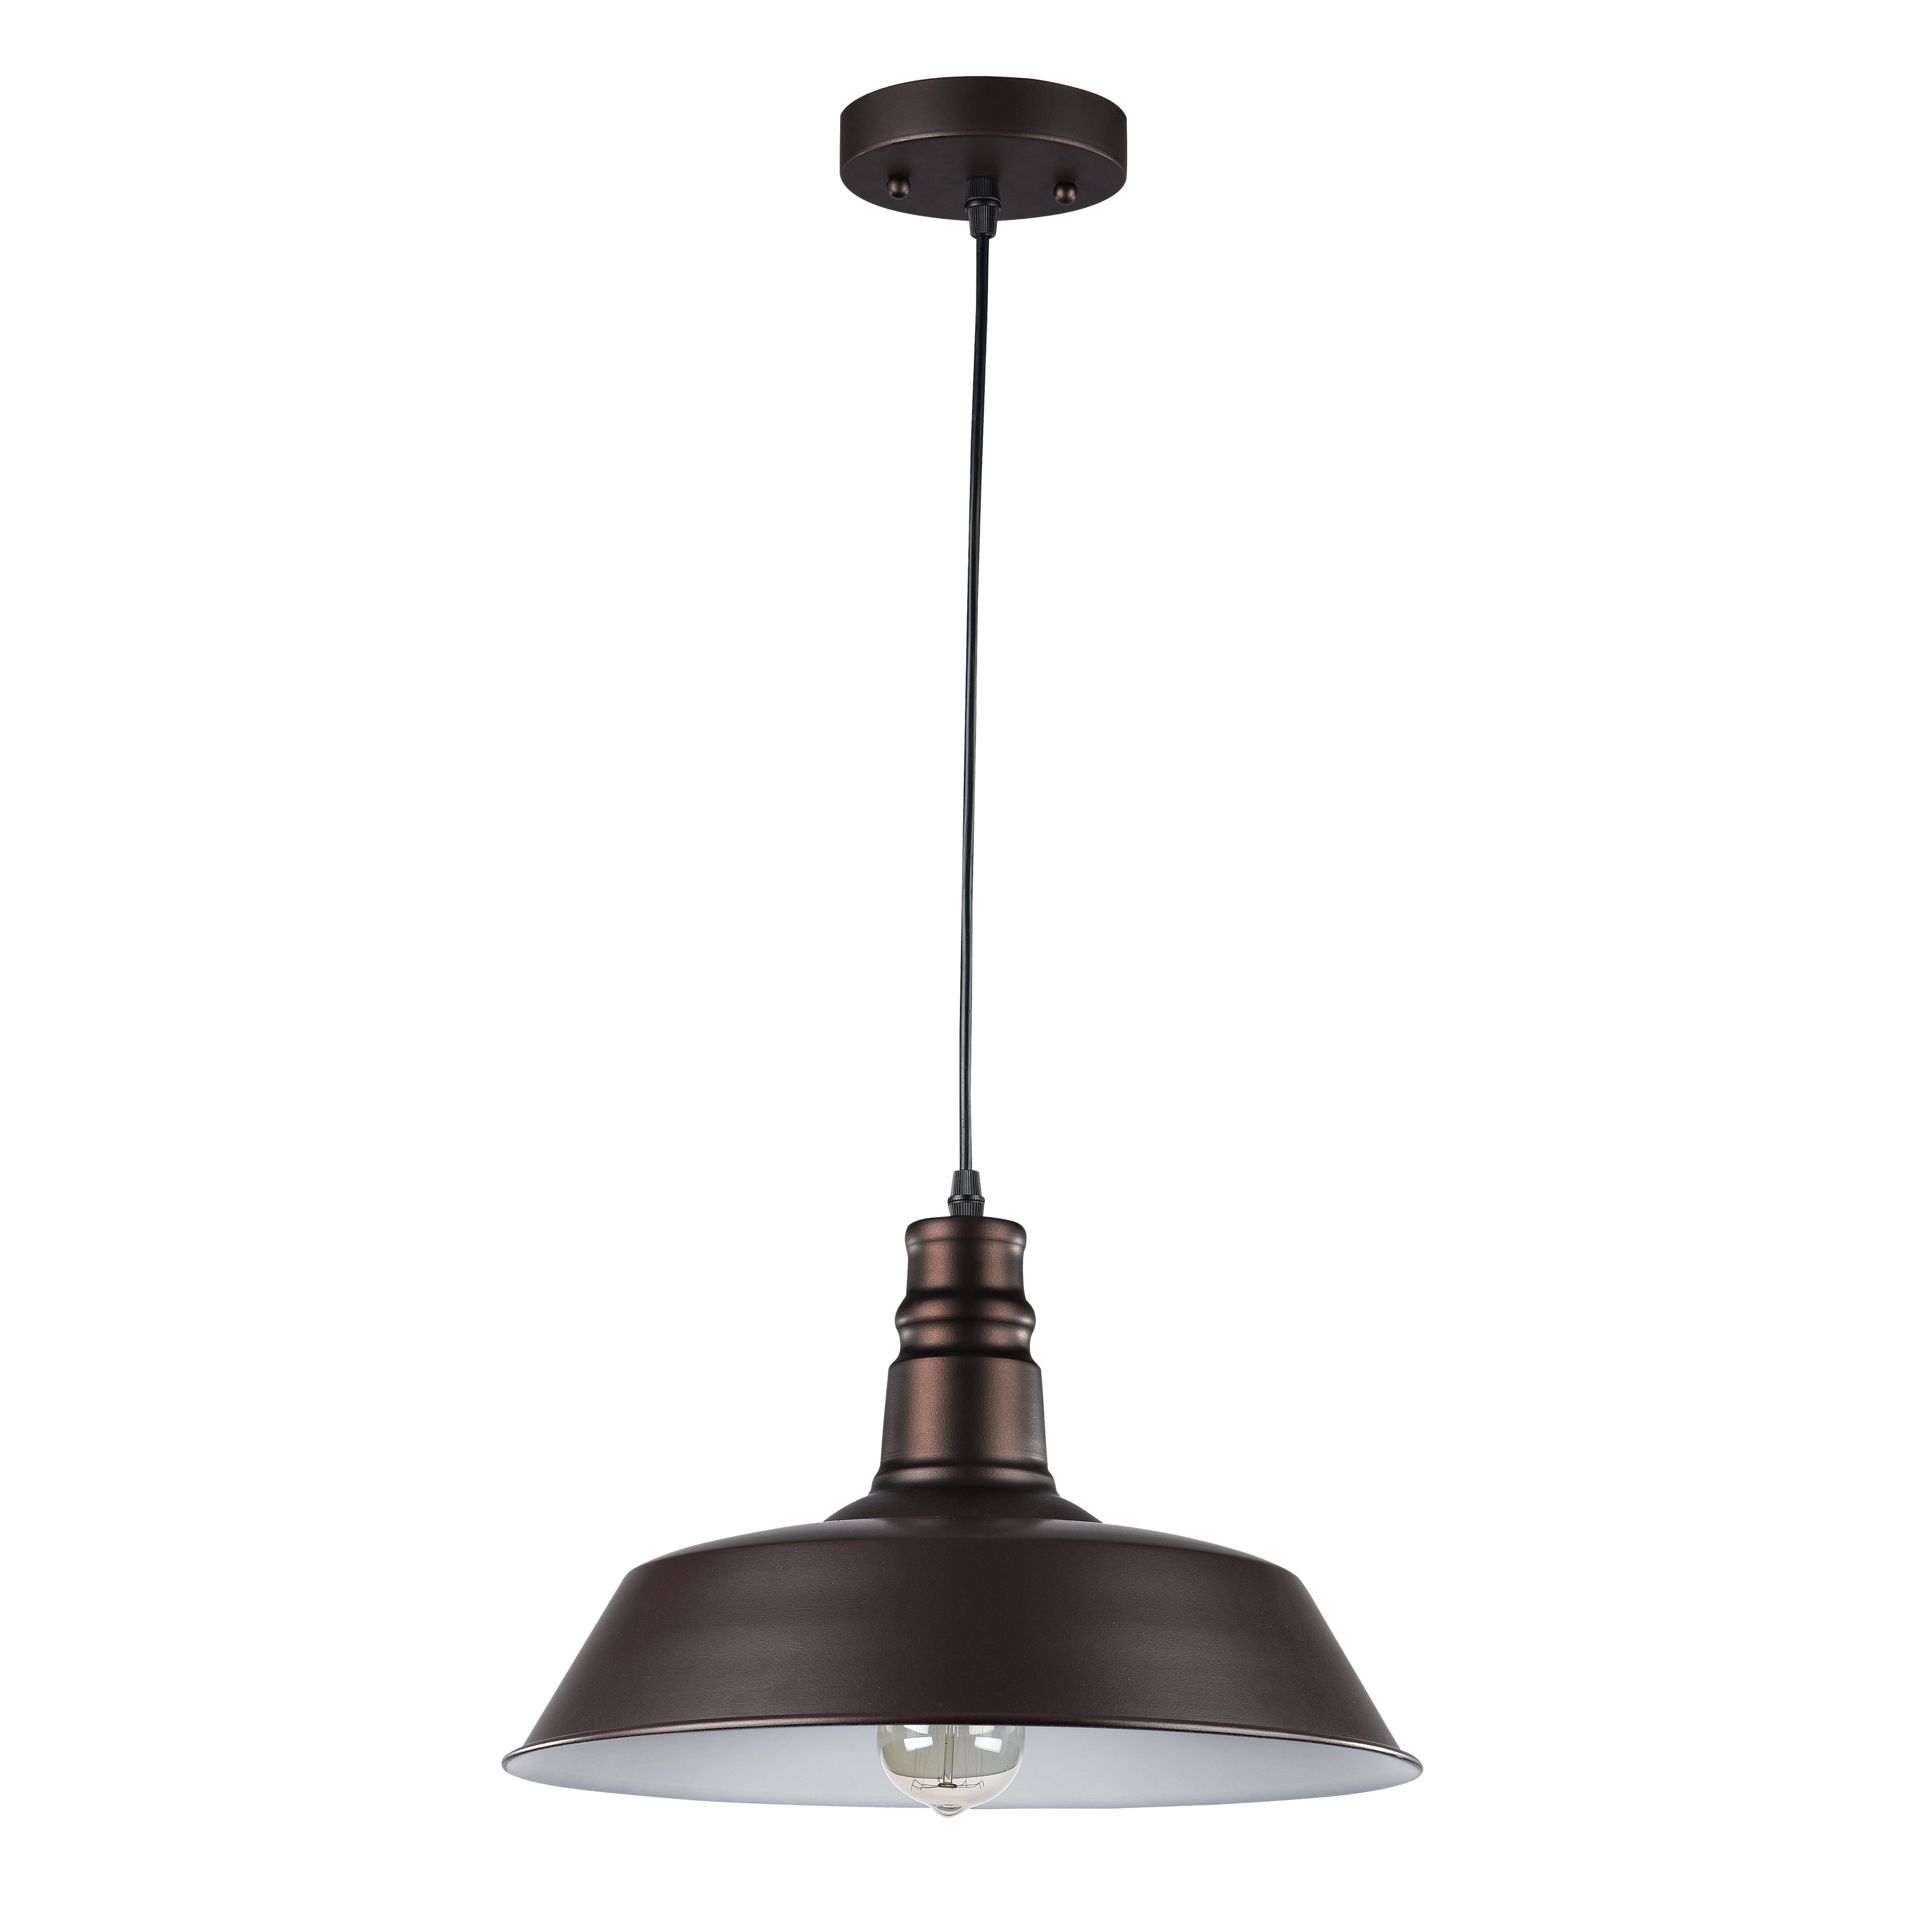 Bouvet 1 Light Dome Pendant Intended For Well Known Conover 1 Light Dome Pendants (View 8 of 25)